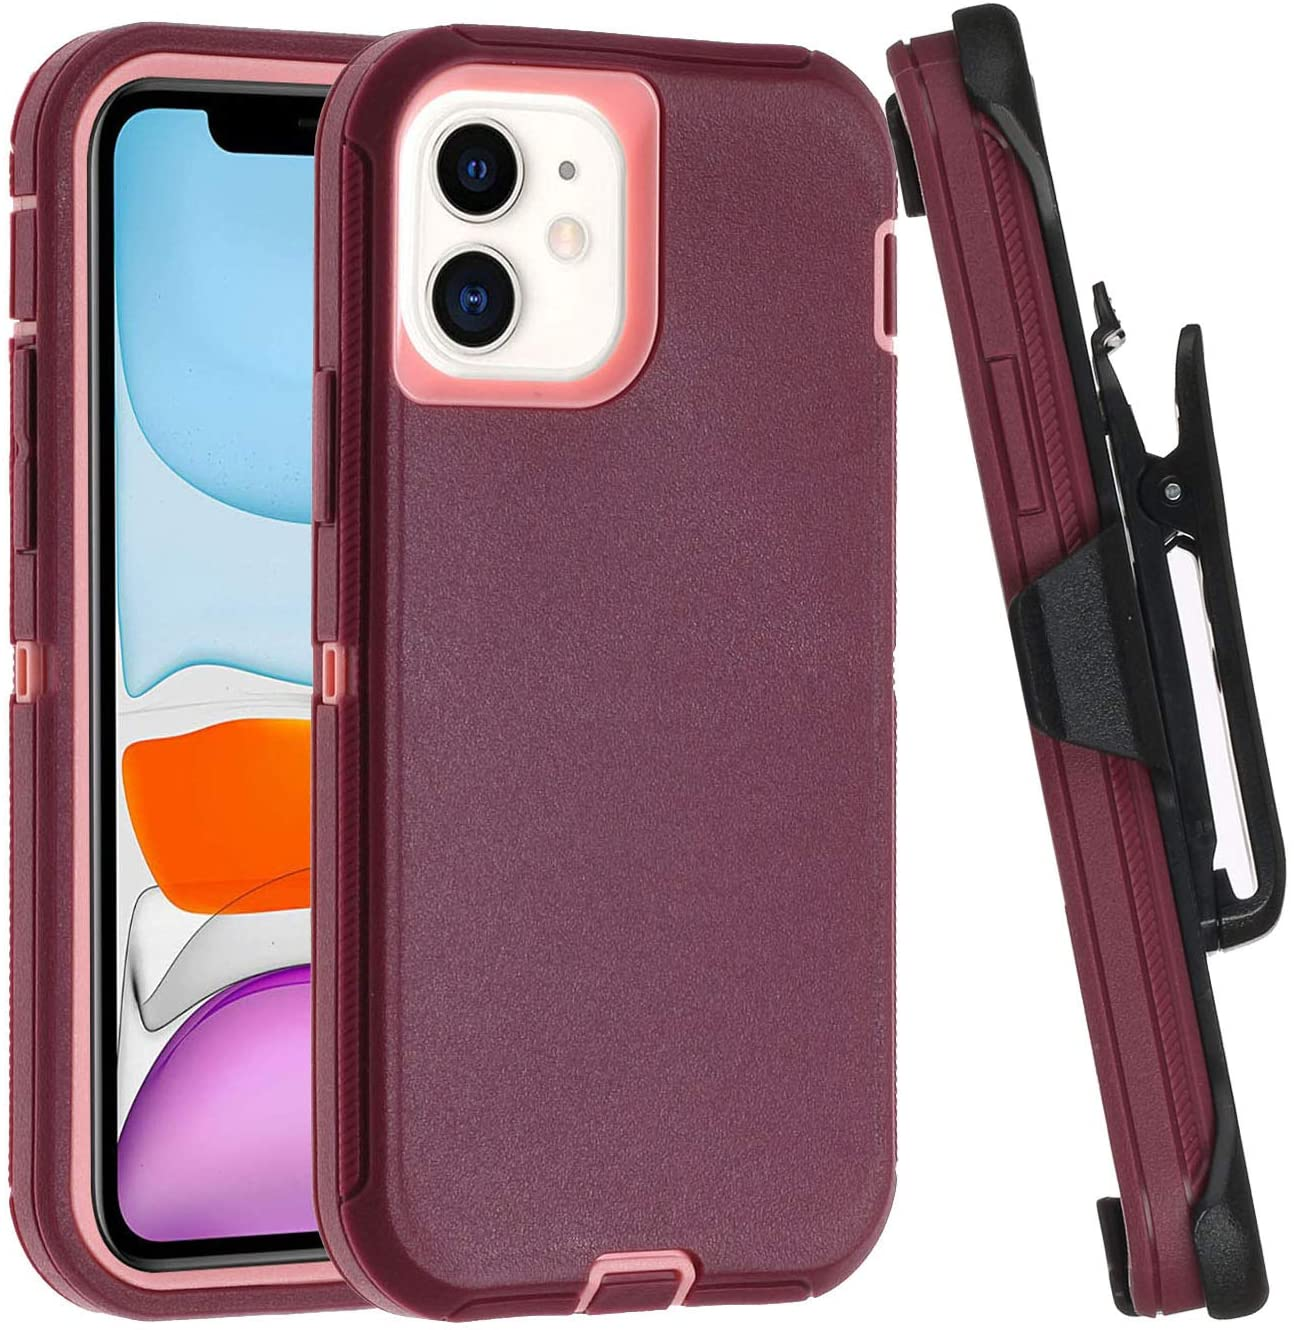 for iPhone 12 Pro Max Case,3 in 1 Shockproof&Drop&Dust Proof Heavy Duty Holster Case Belt Clip and Armor Protective Kickstand Cover(iPhone 12 Pro Max 6.7